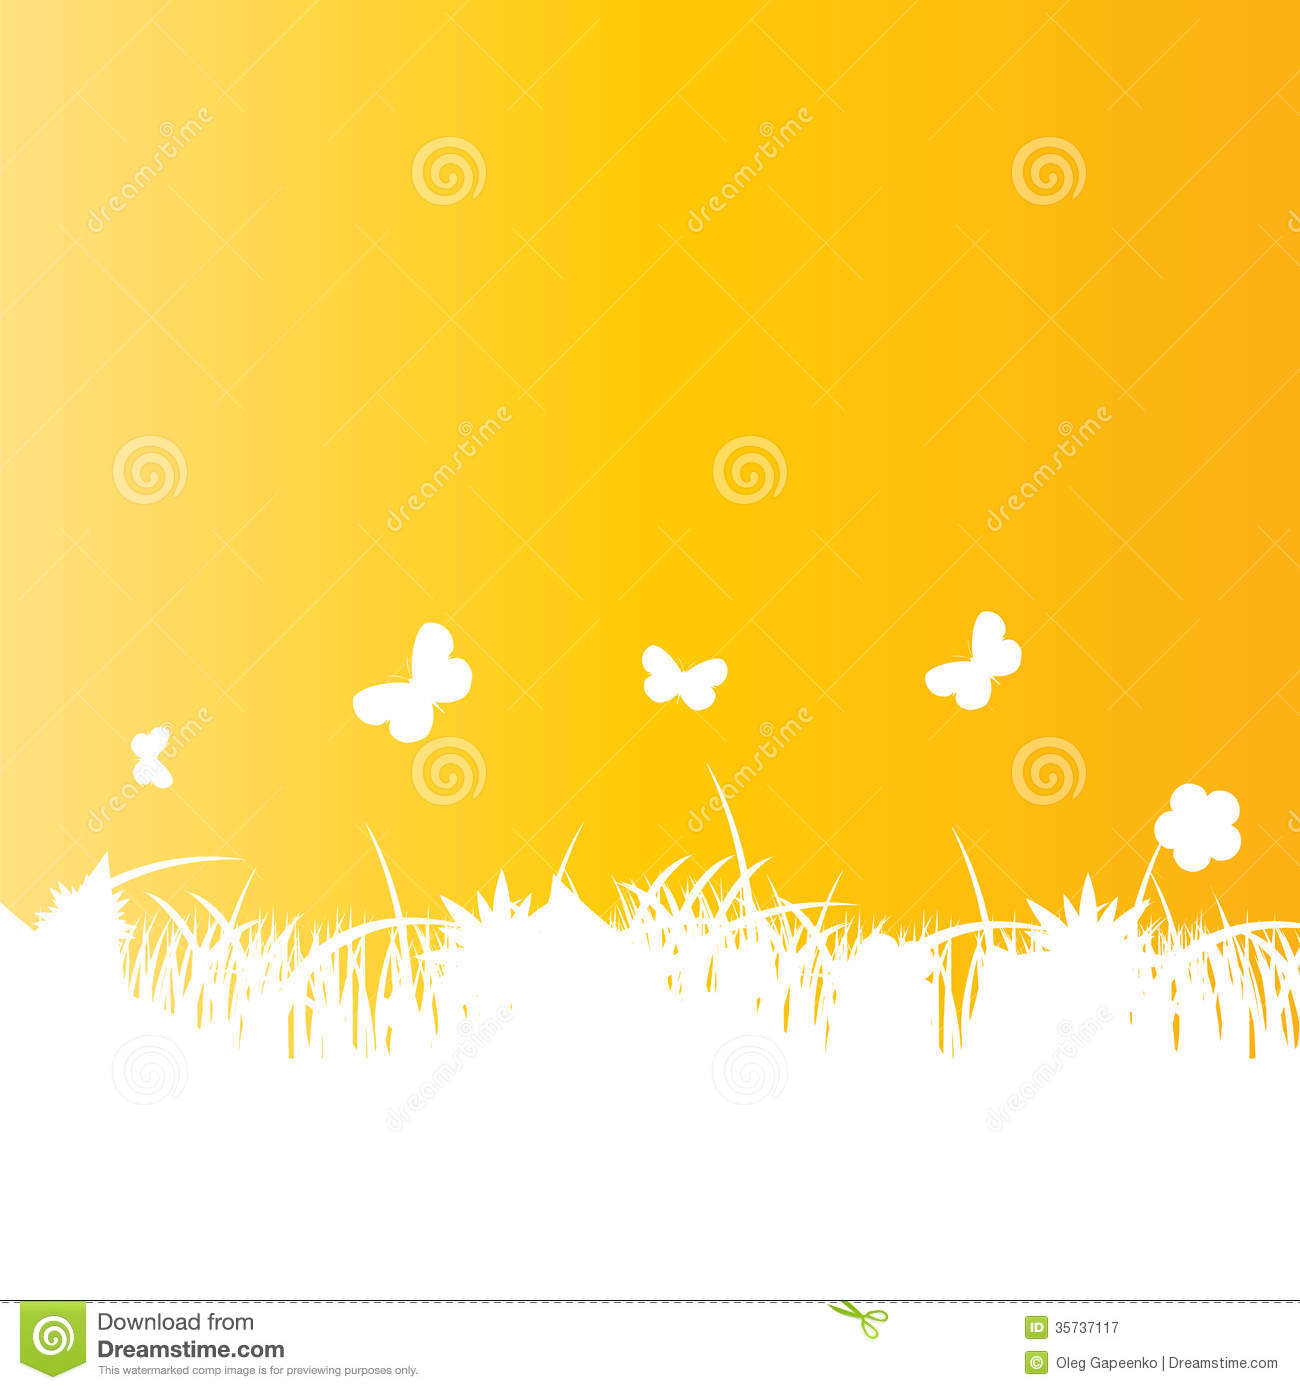 Flower And Grass Banner. Vector Illustration Royalty Free Stock ...